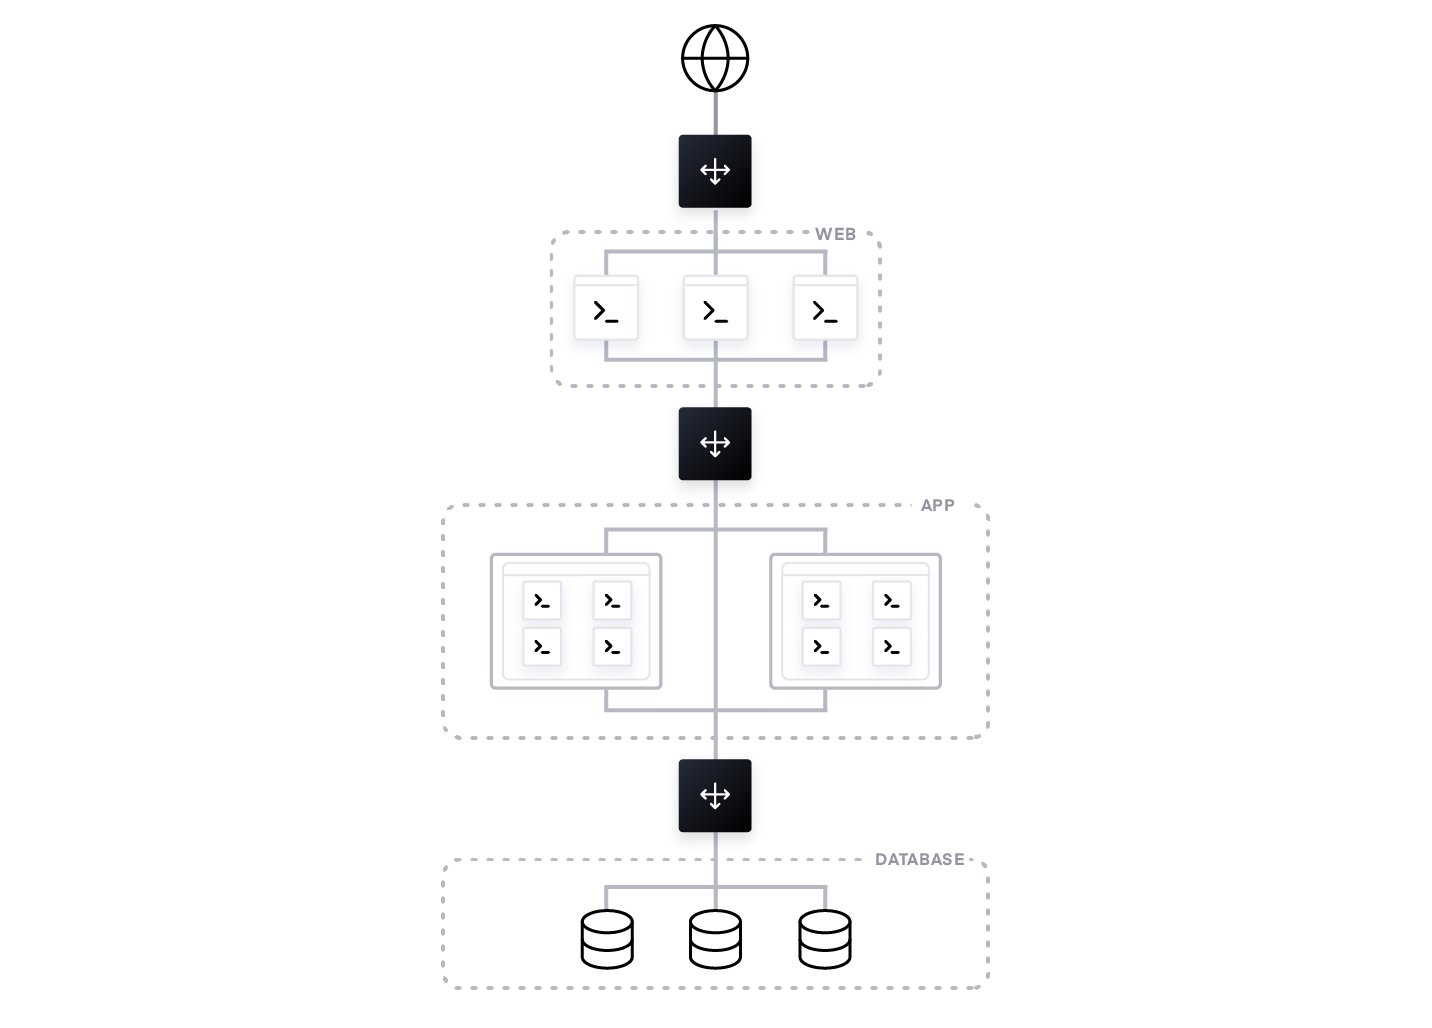 Figure 2: A static network topology with load balancers fronting the database, monolithic applications, and the web front-end.